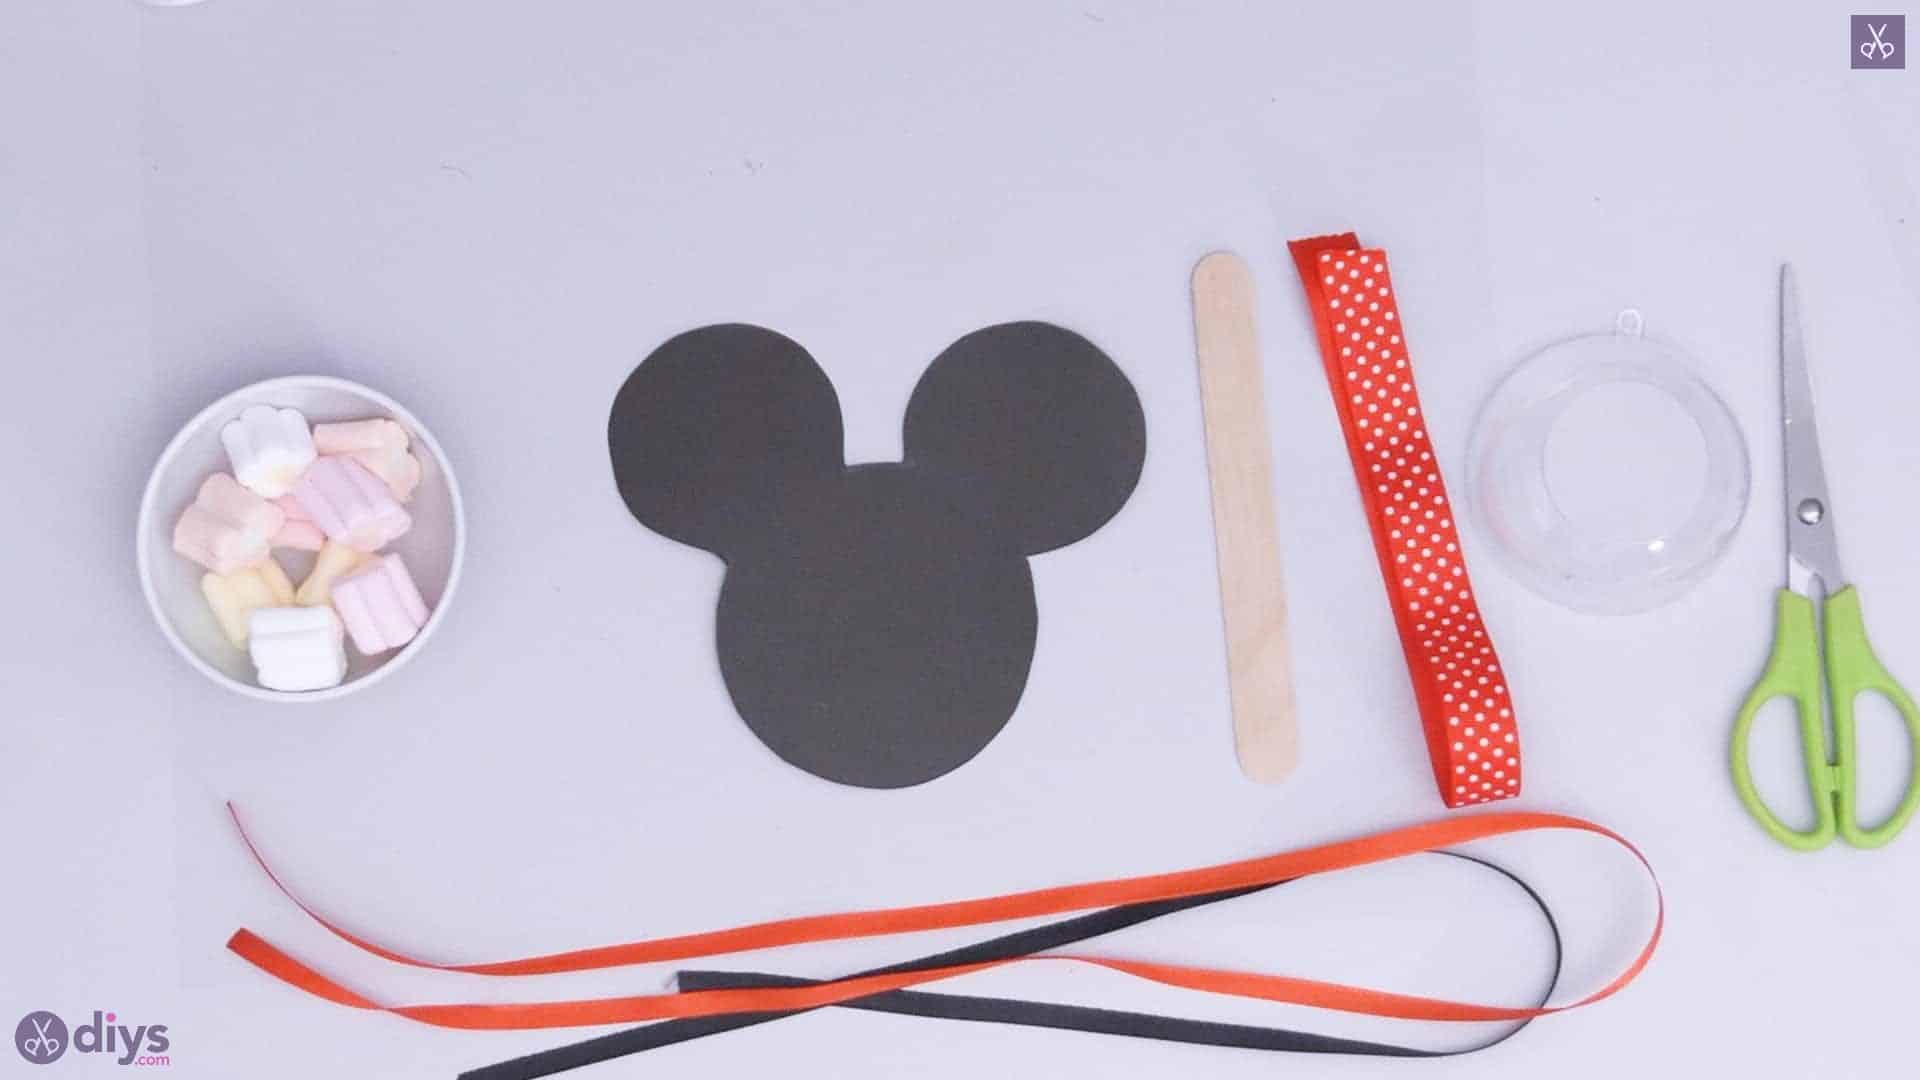 Diy minnie mouse candy holder materials cutting